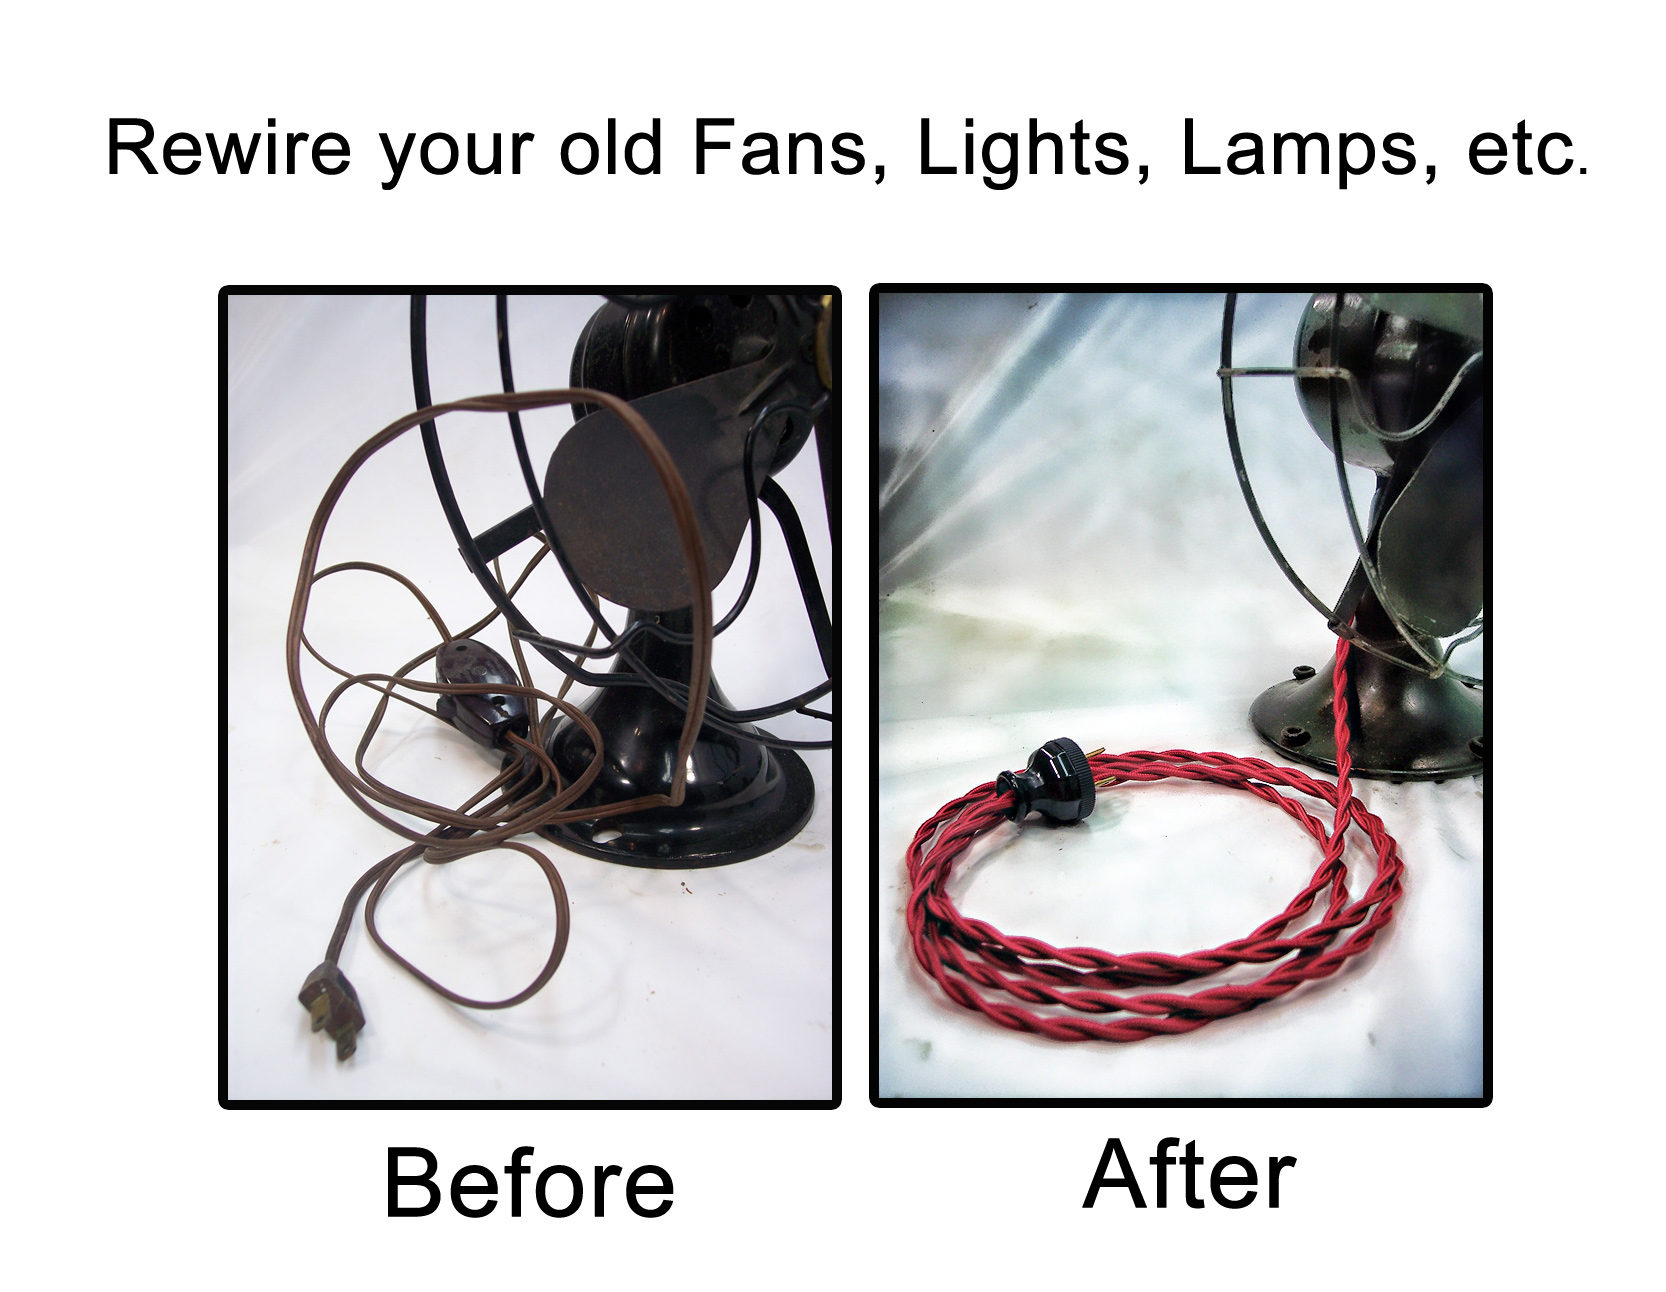 Cloth-Covered Rewire Kits for Lamp & Fan Restorations